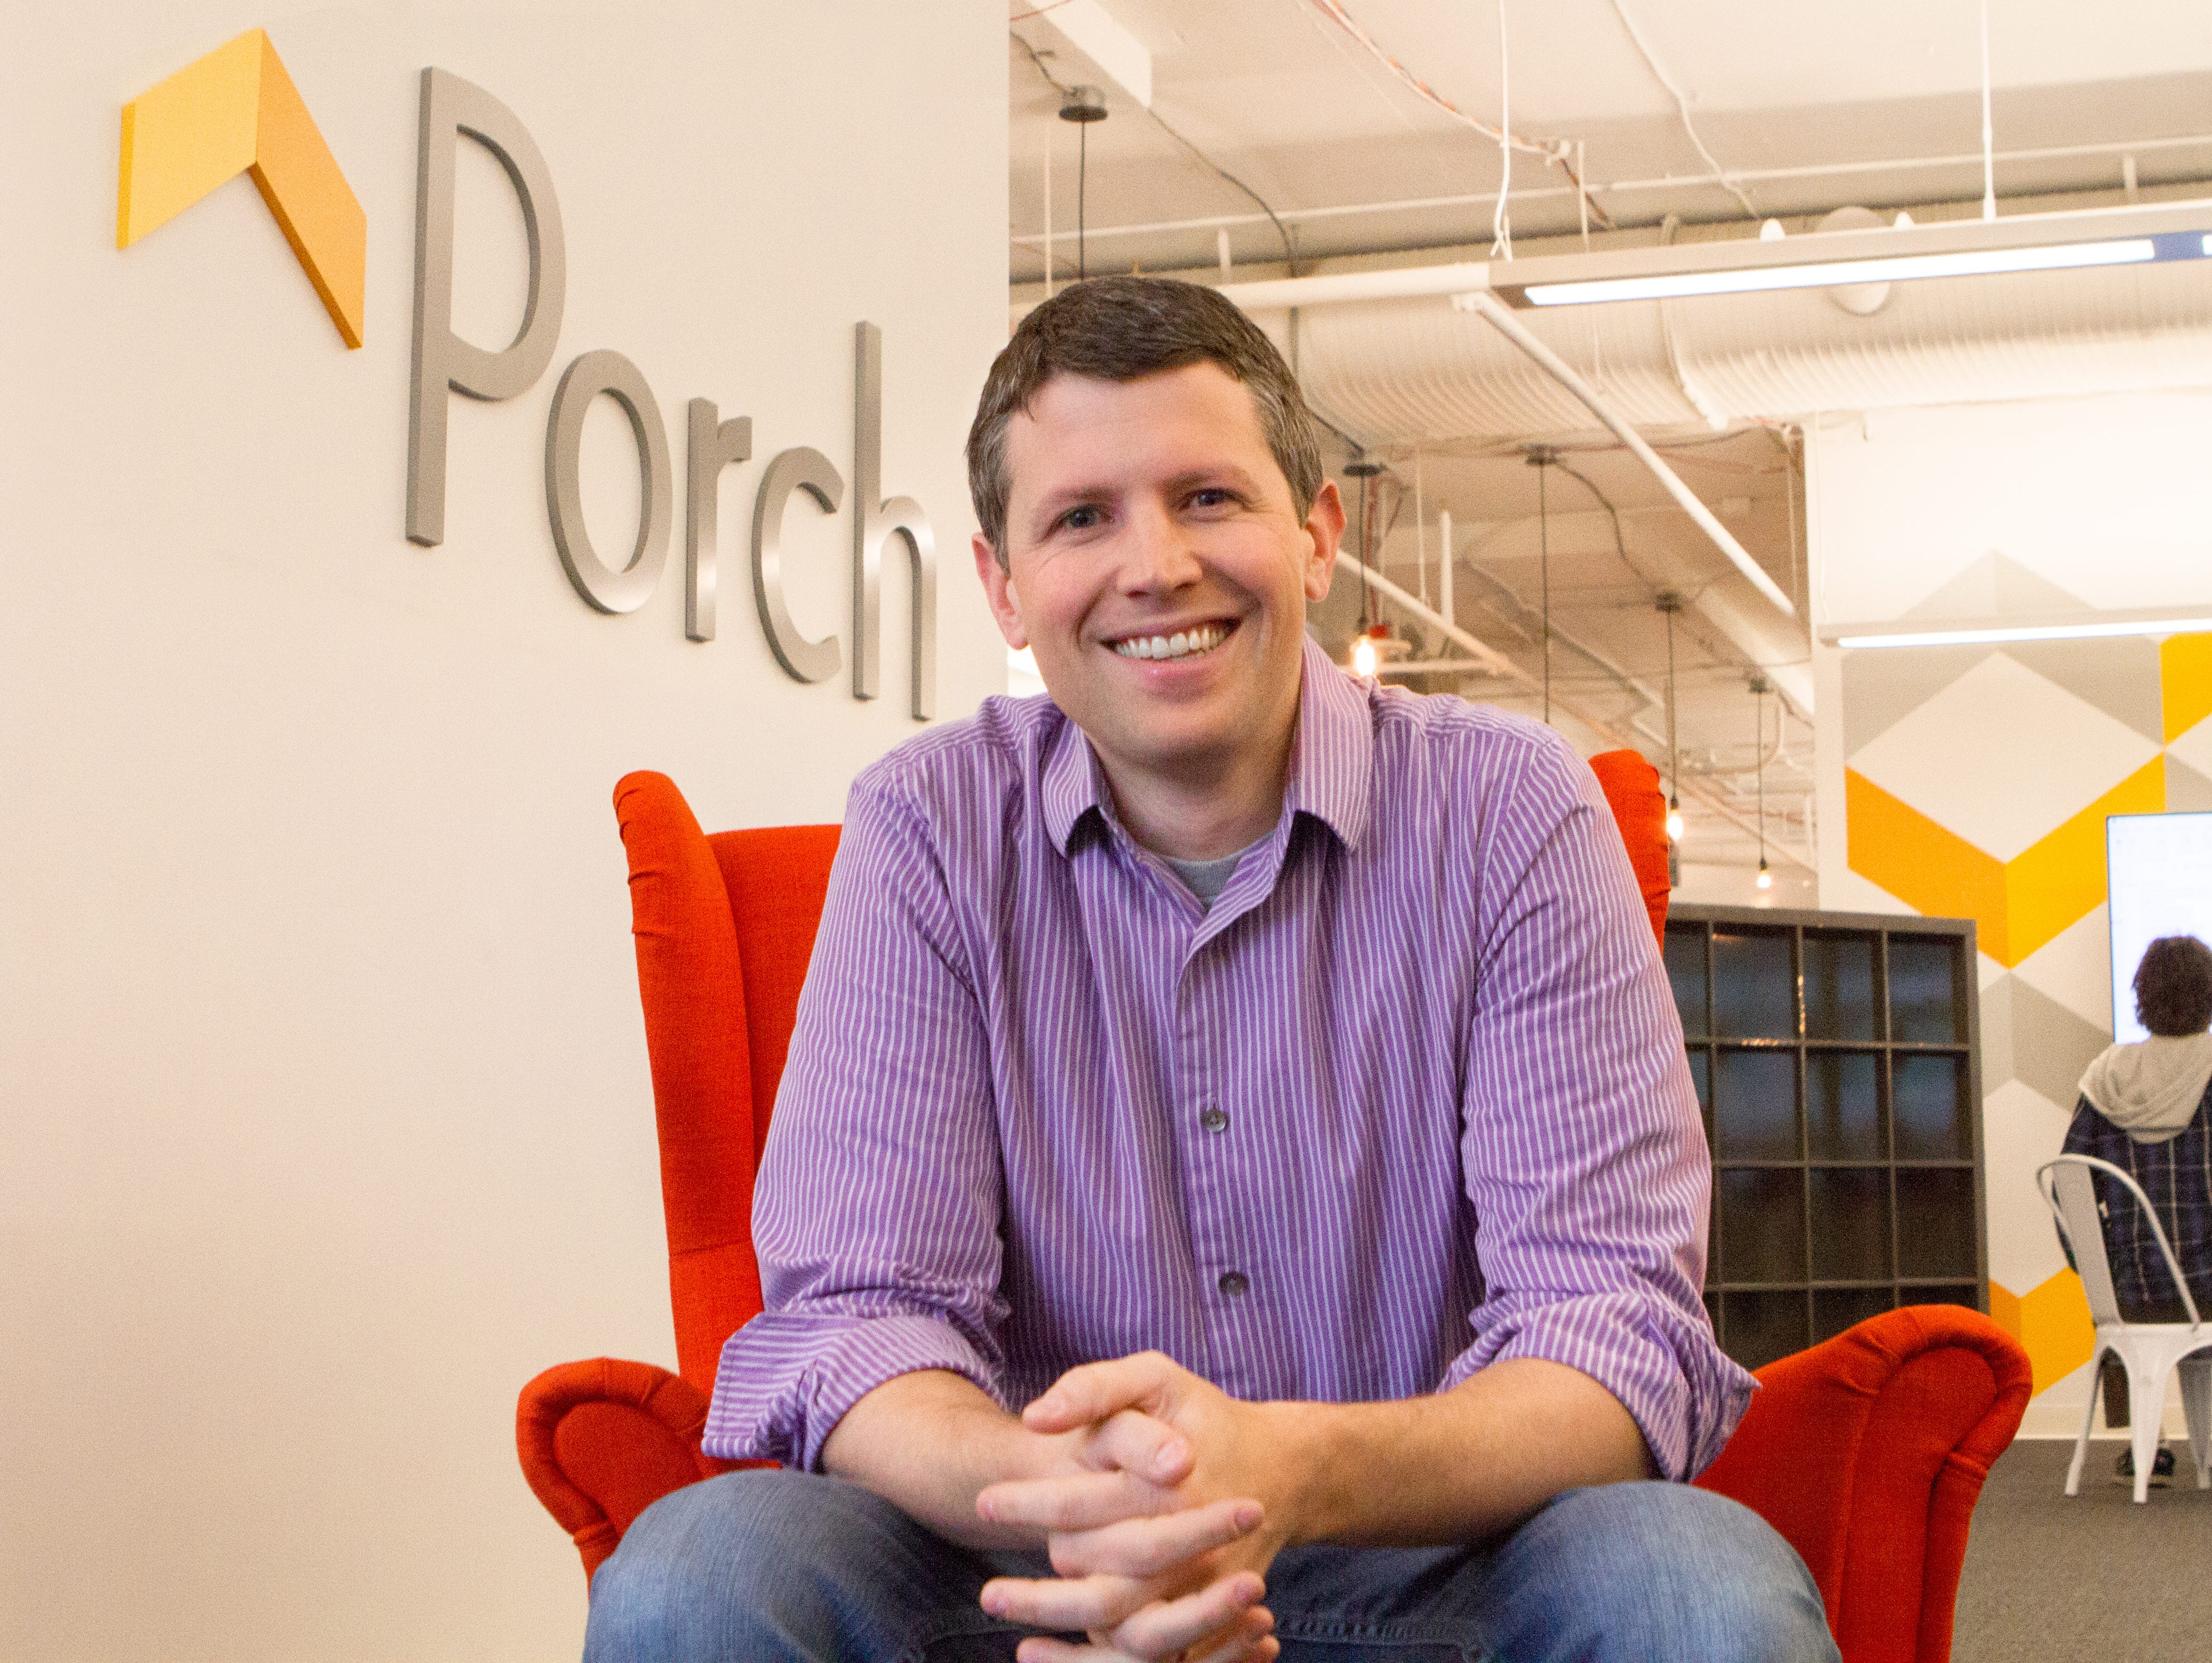 Matt Ehrlichman, 35, is the CEO of Porch.com, a company that links homeowners with contractors.